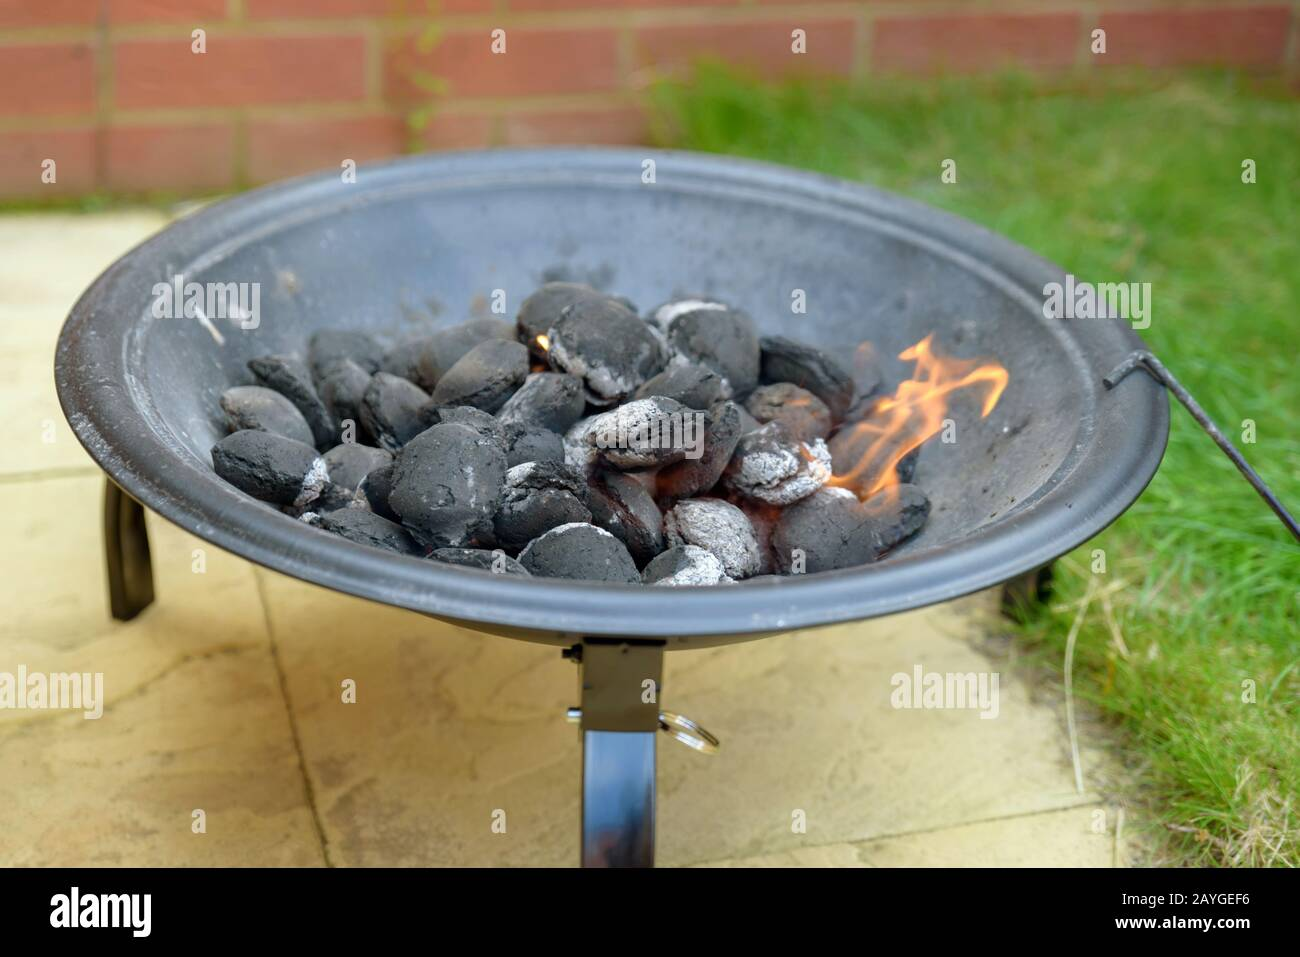 Bbq Grill Charcoal Starting Fire For Party In Backyard In England Uk Stock Photo Alamy